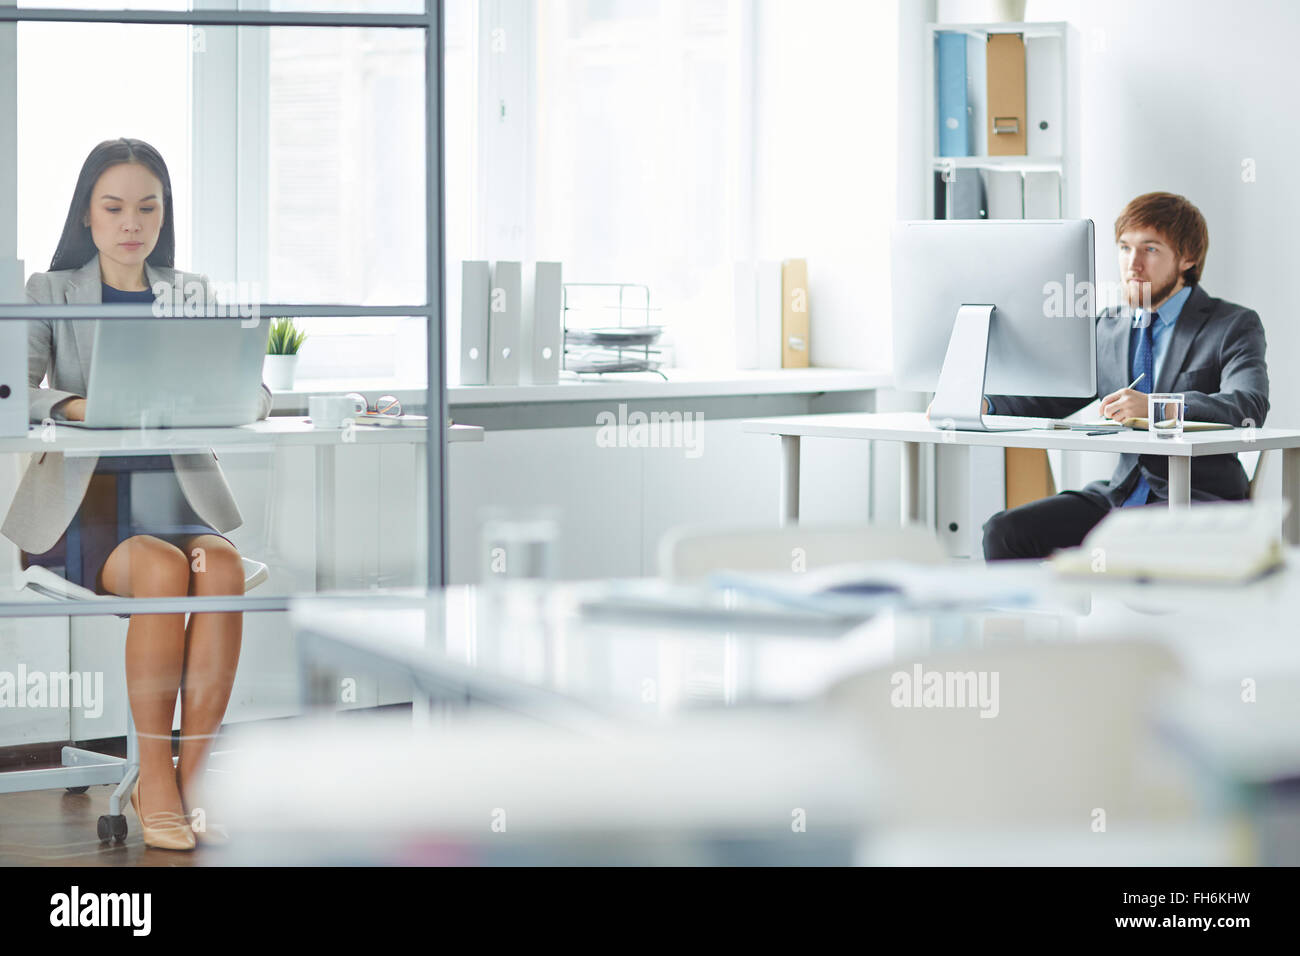 Two young managers doing their routine work in office - Stock Image